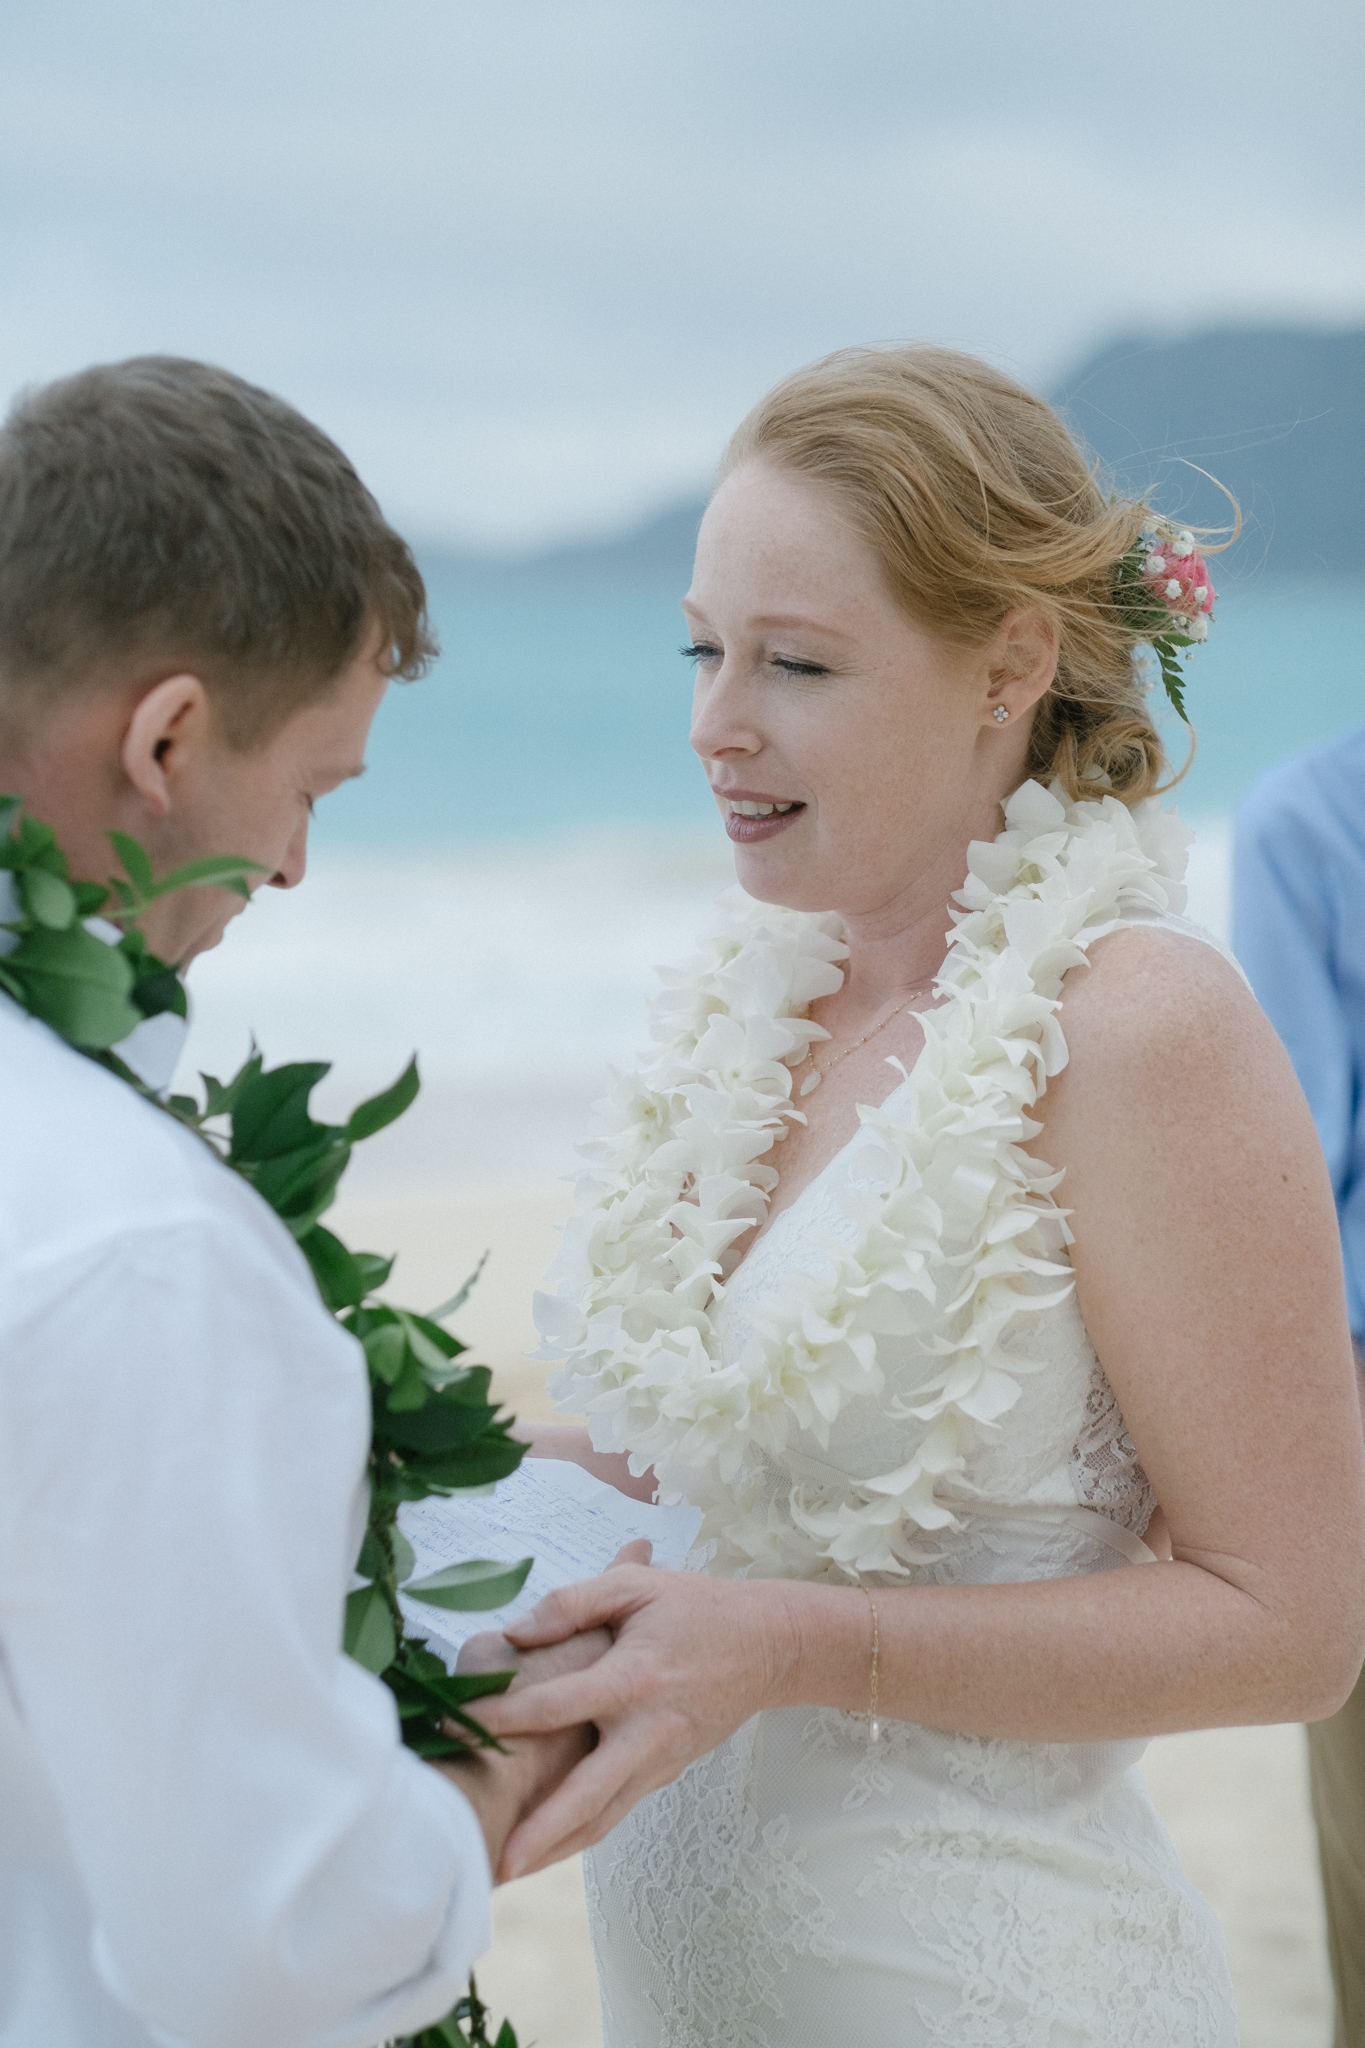 waimanalo_beach_wedding_photographer-17.jpg